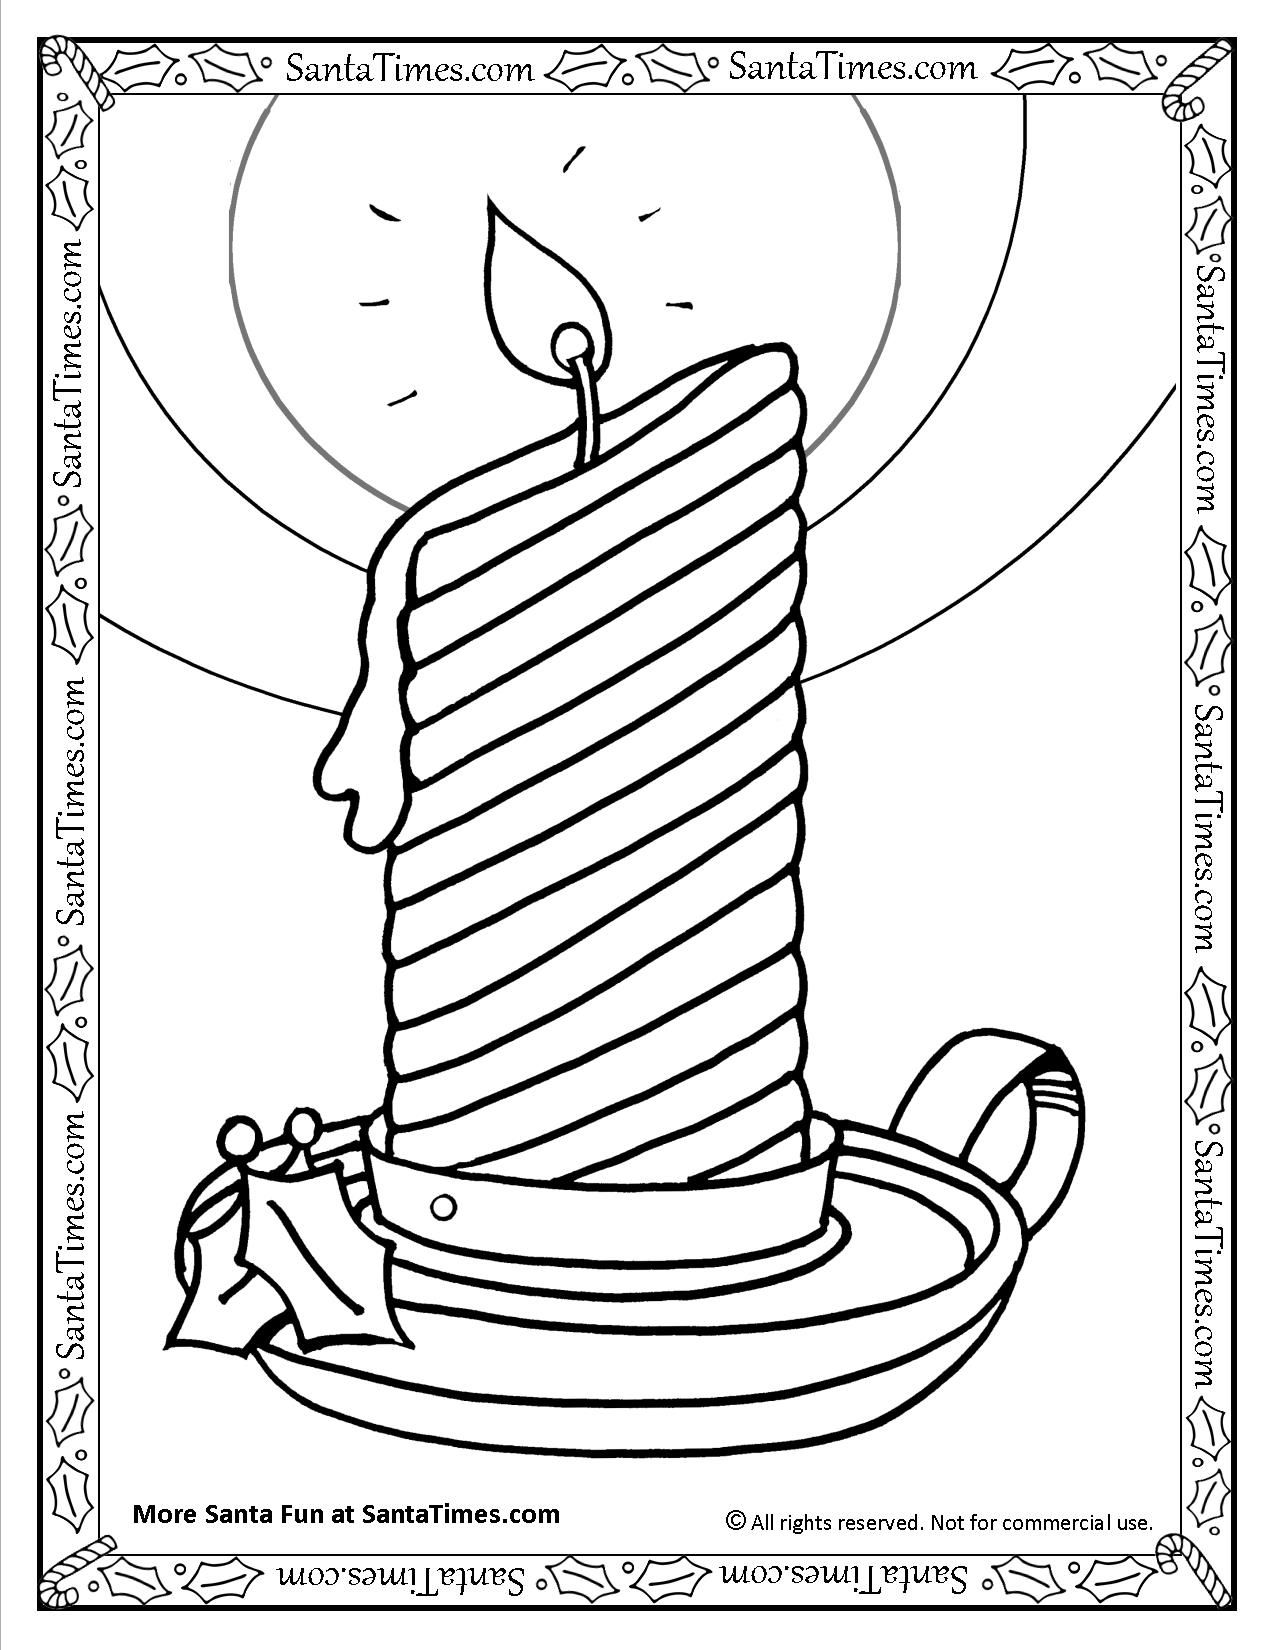 Holiday Candle Printable Coloring Page Gt More Coloring Pages At Nta T Candle